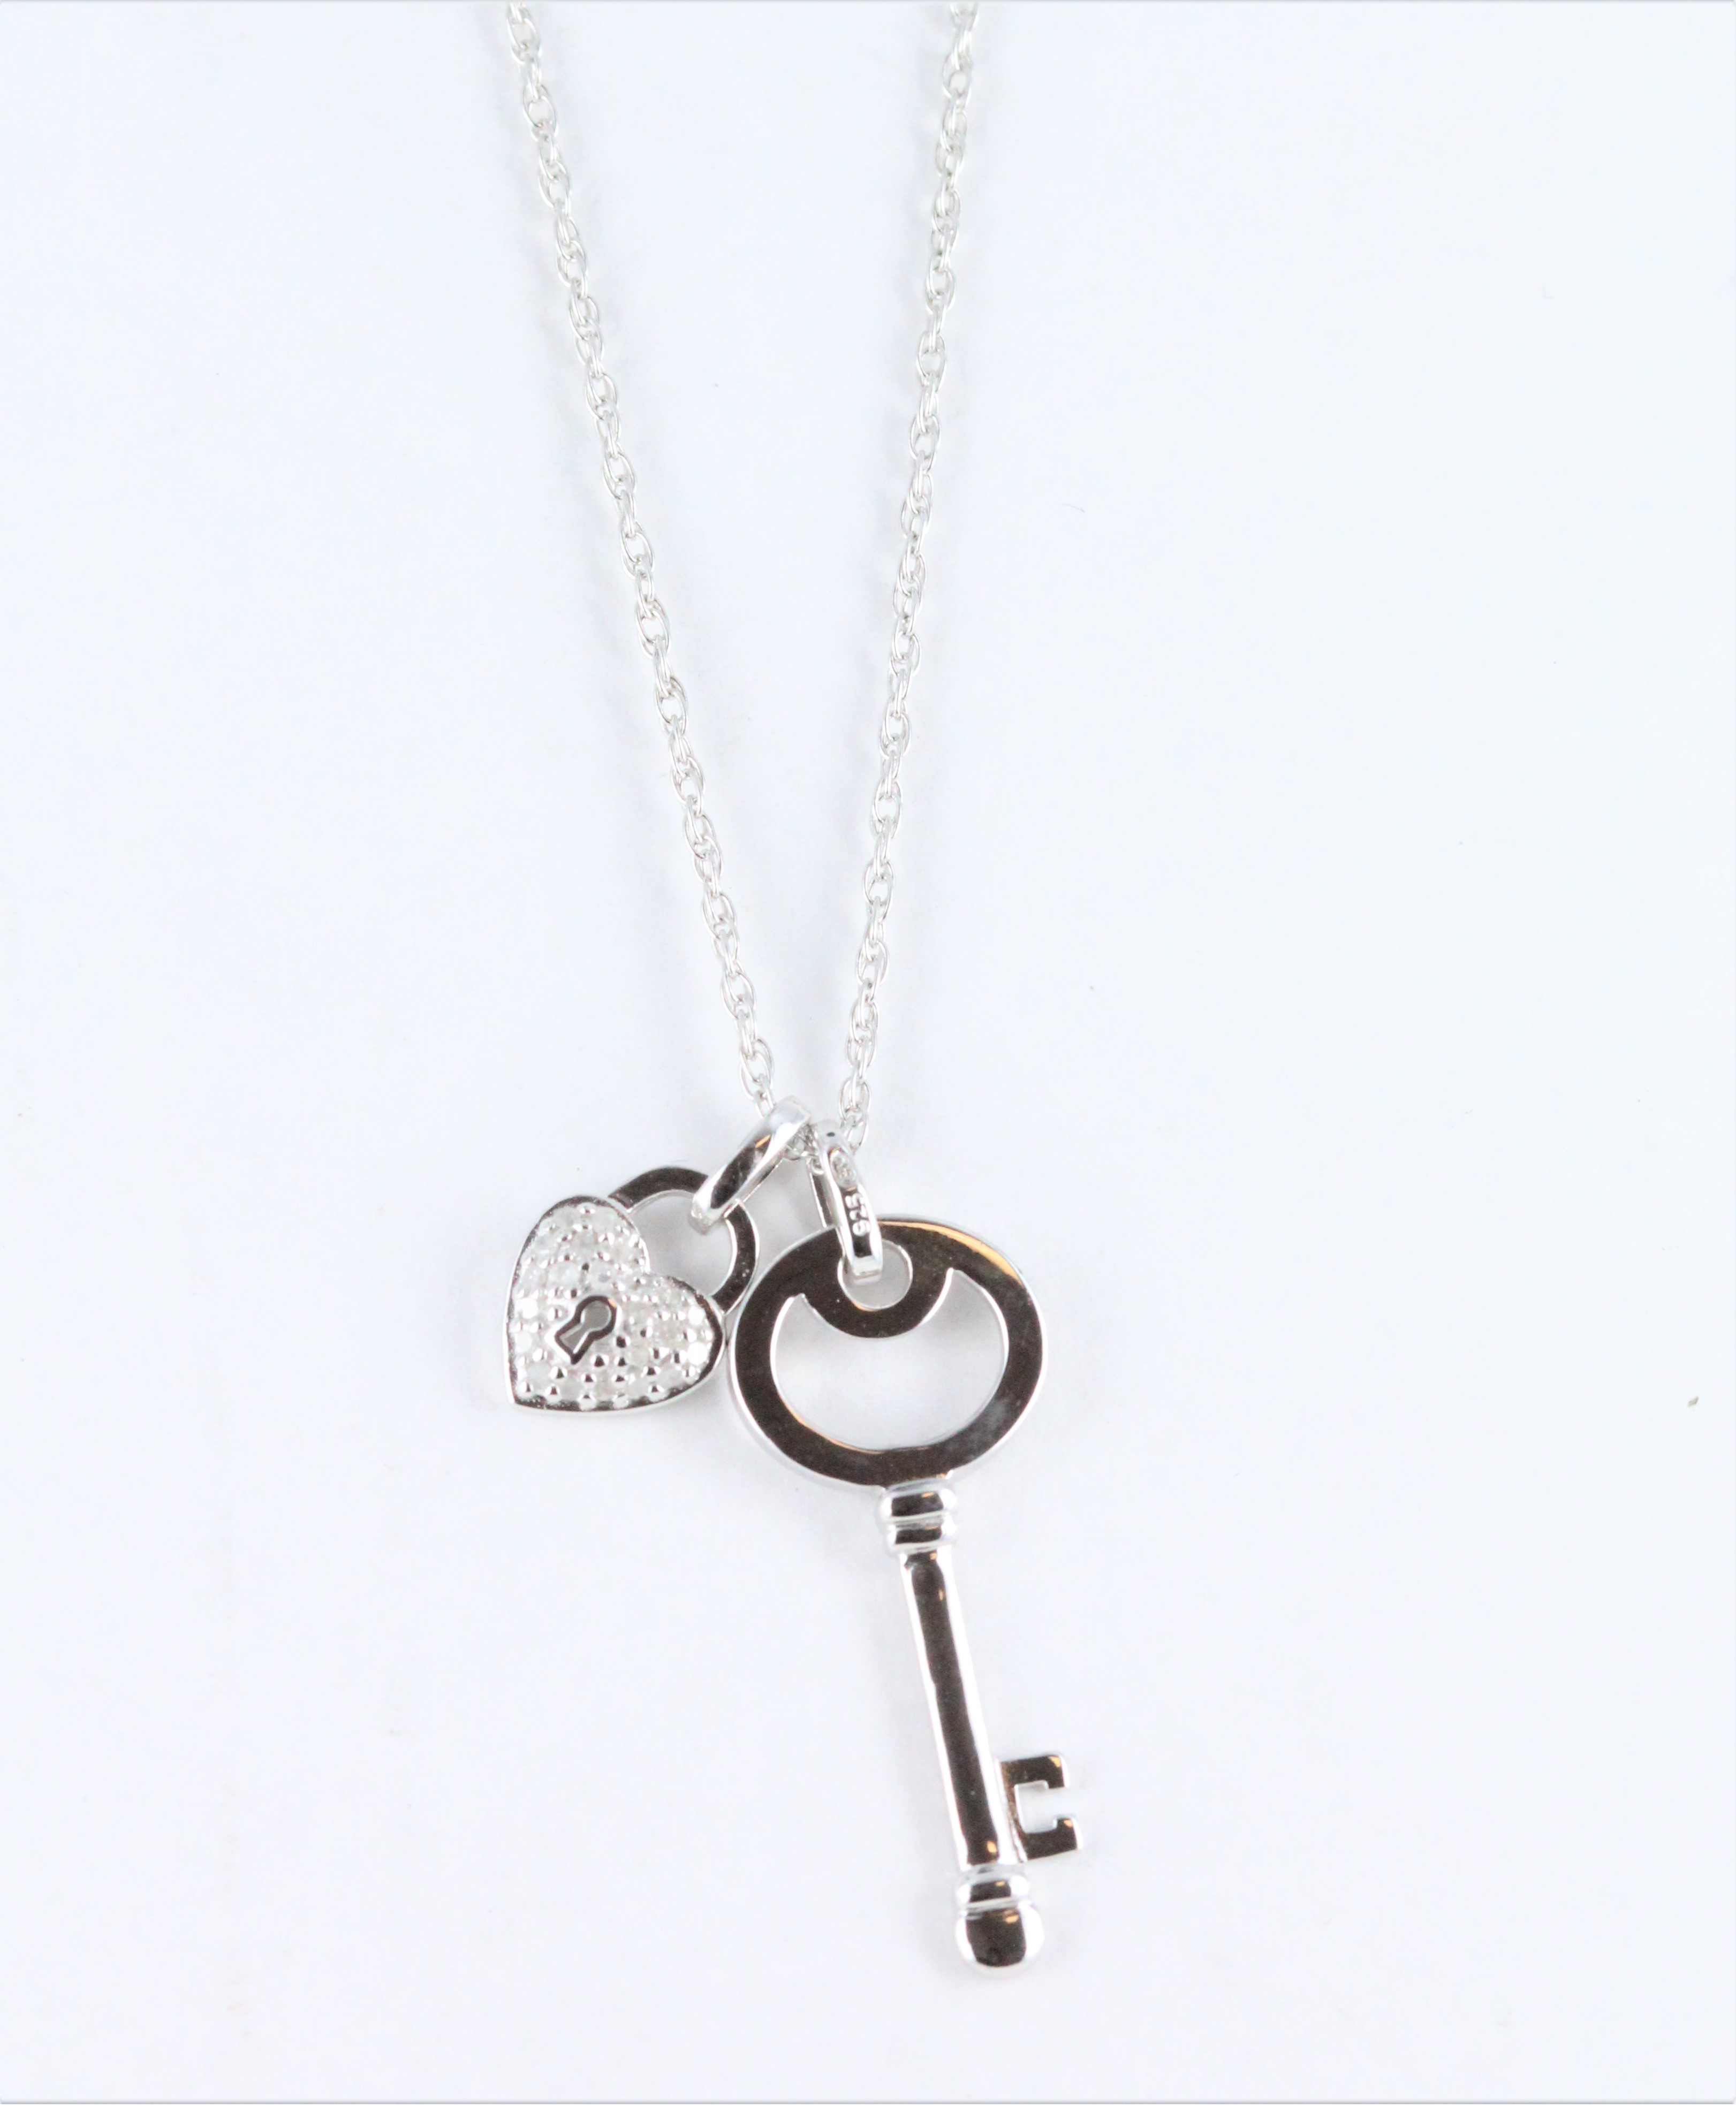 5a21bb4f5 Details about Sterling Silver Diamond Lock & Key Pendant 1/10 CTTW